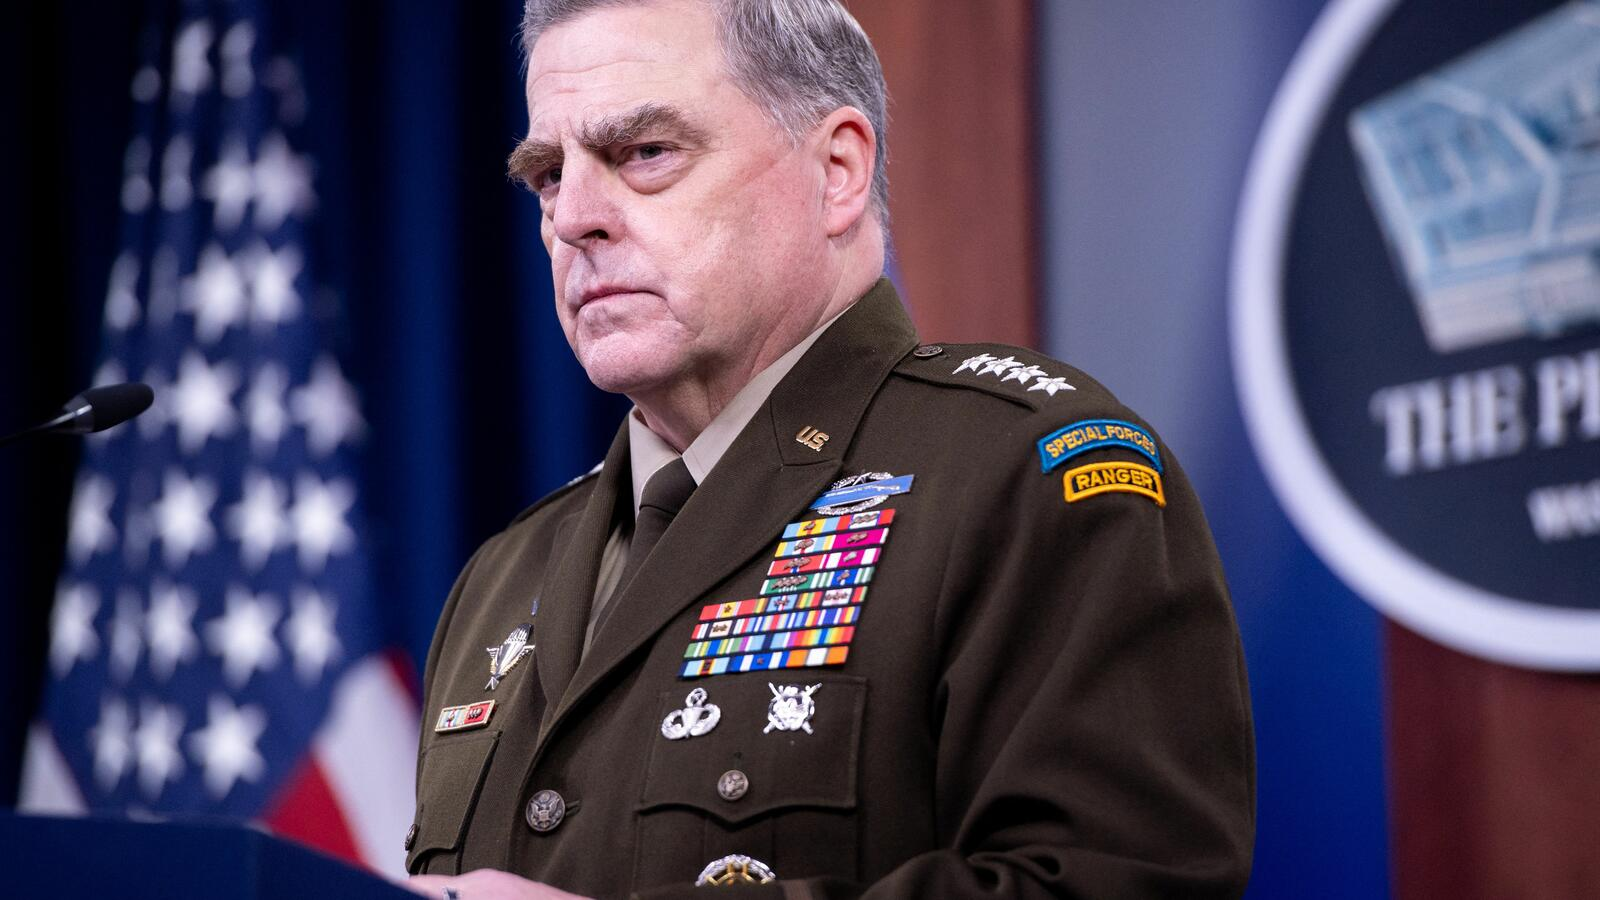 Gen. Mark Milley is Potentially Treasonous and Definitely Incompetent